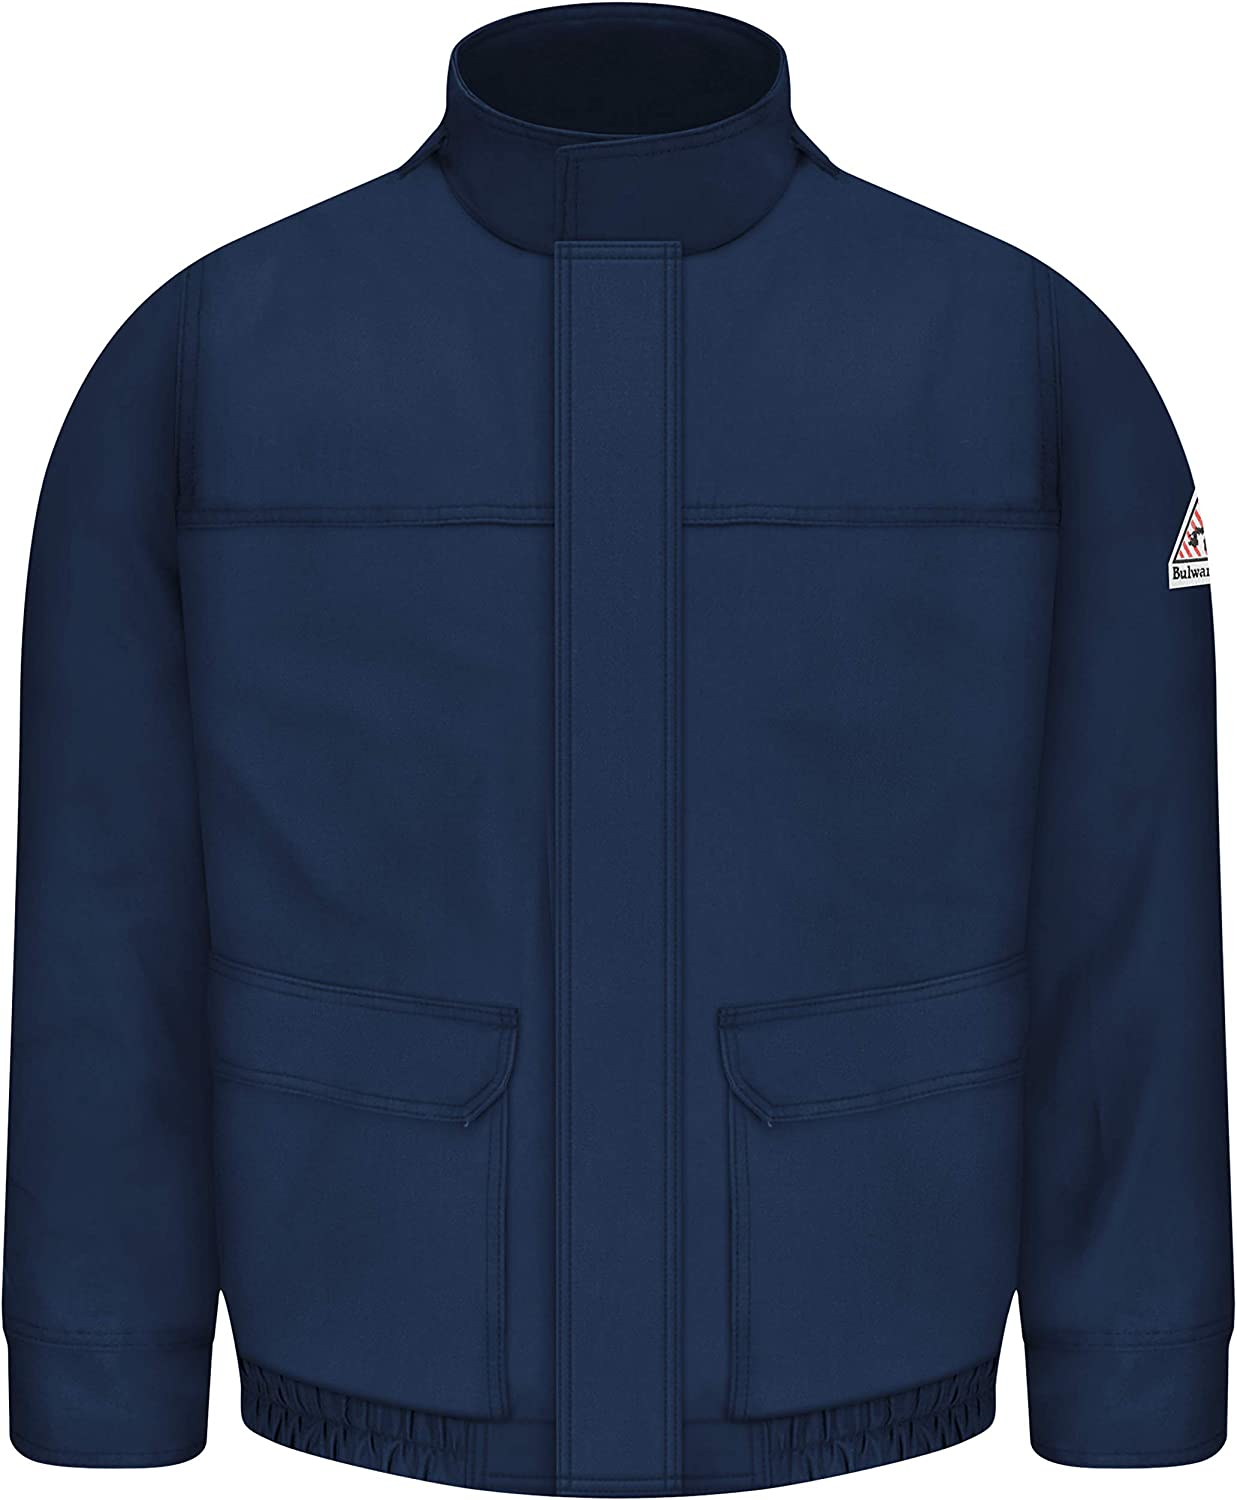 Bulwark Flame Resistant 7 oz Twill Cotton/Nylon ComforTouch Lined Bomber Jacket